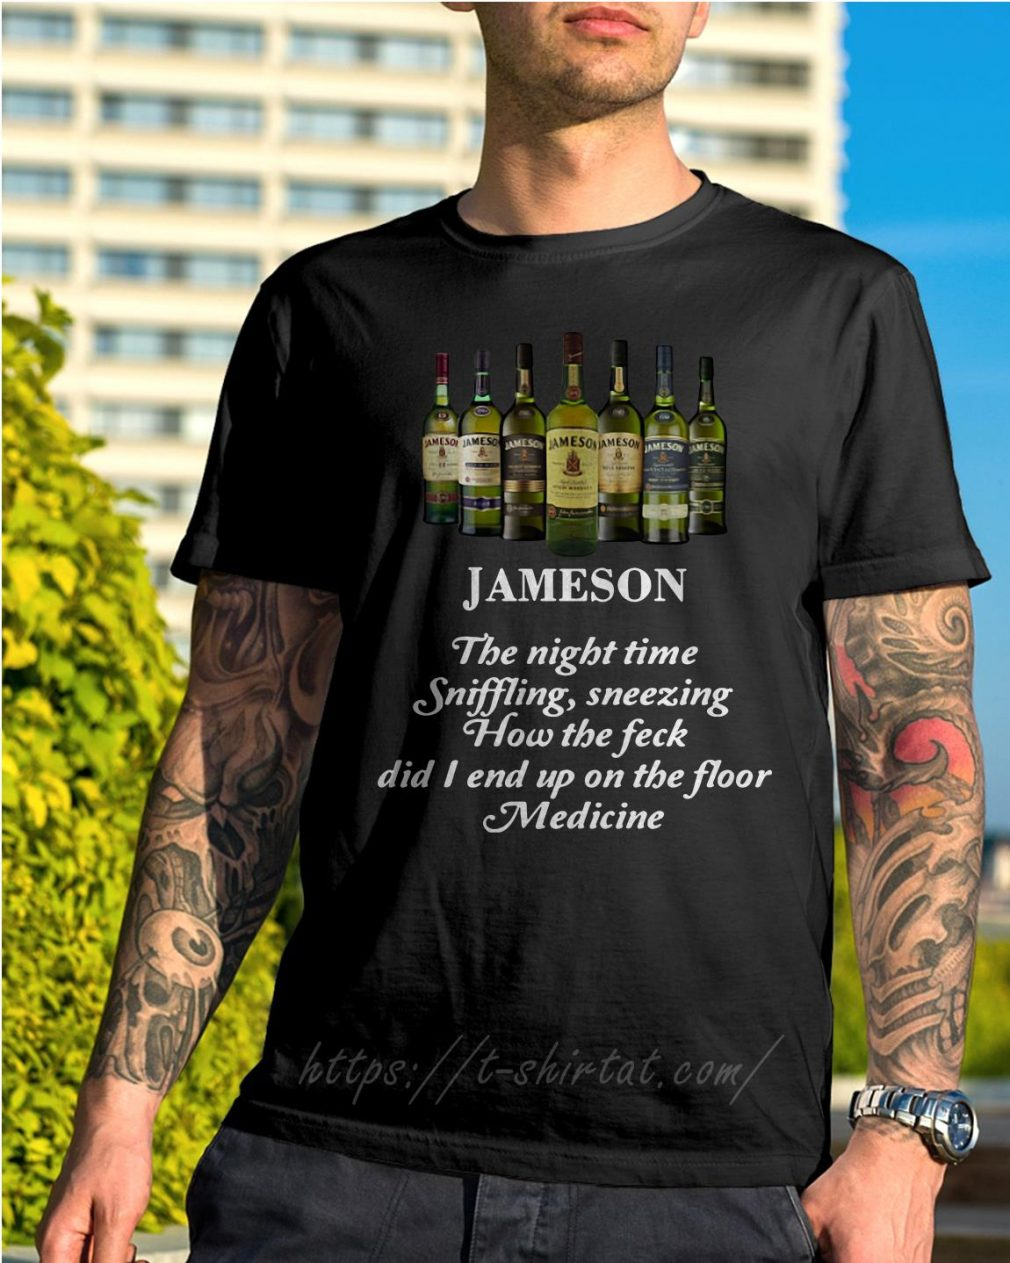 Jameson the night time sniffling sneezing how the feck shirt